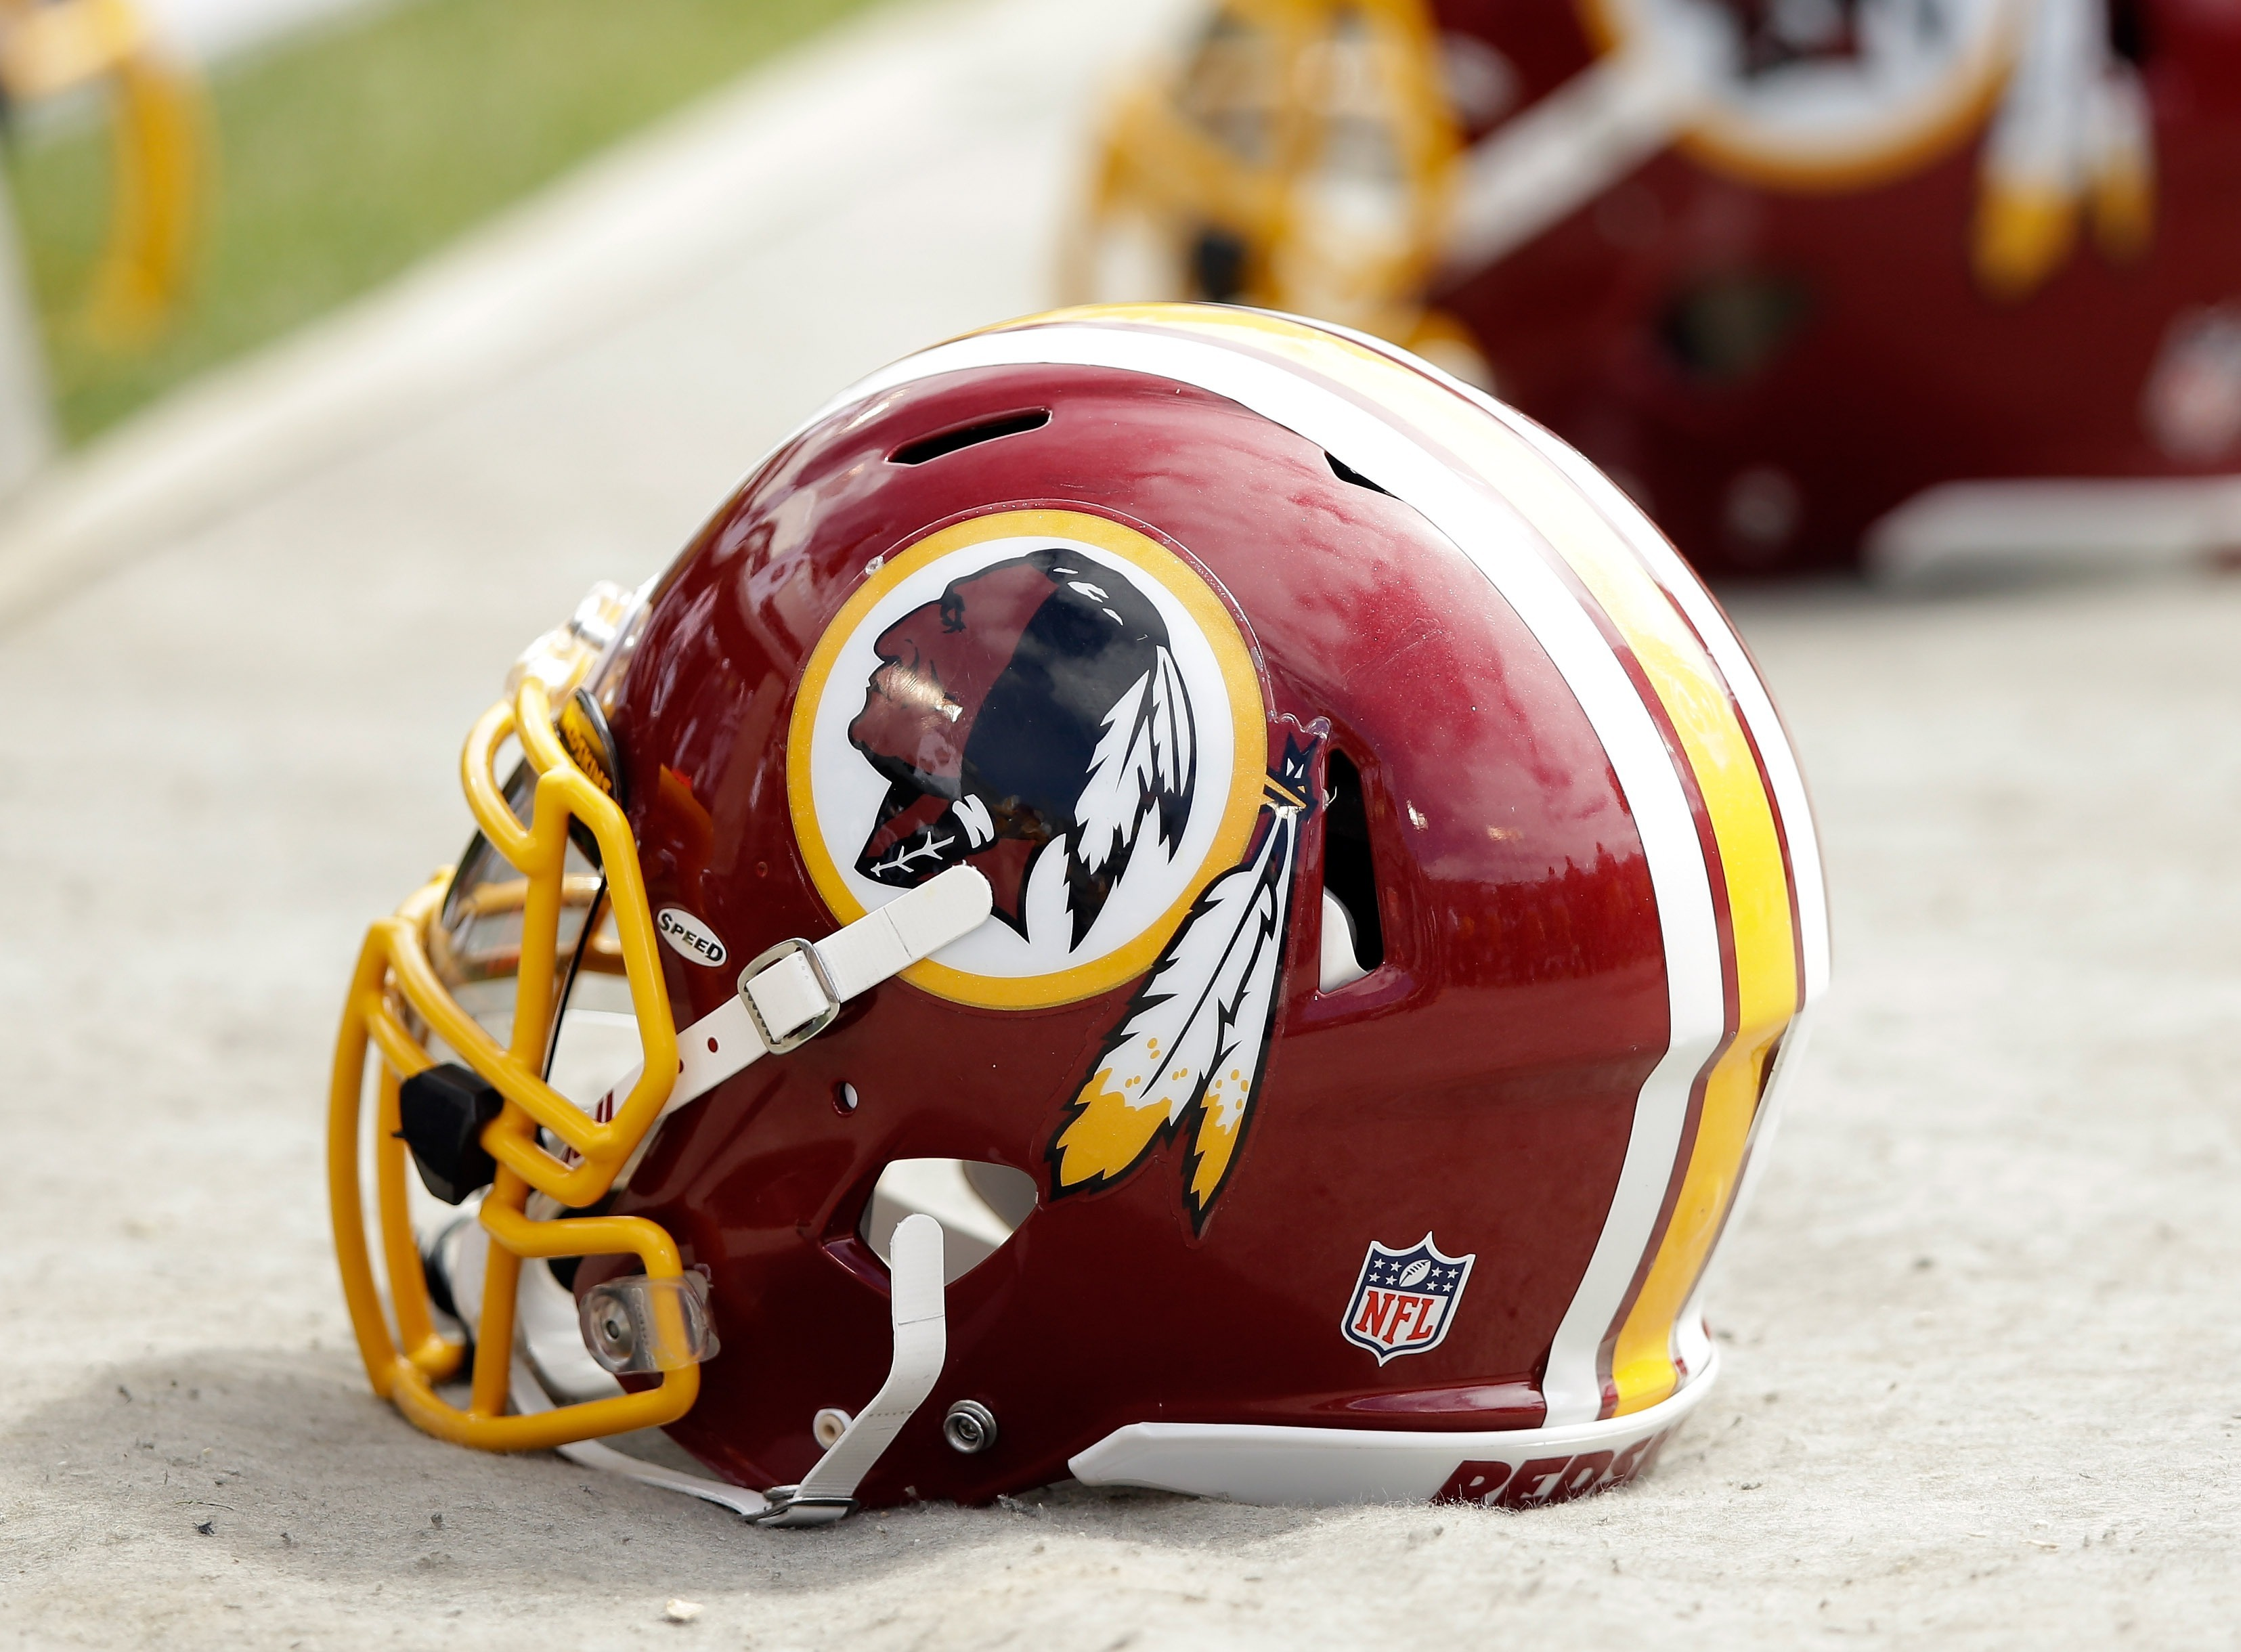 Washington Redskins helmets lay on the ground during a game against the Oakland Raiders